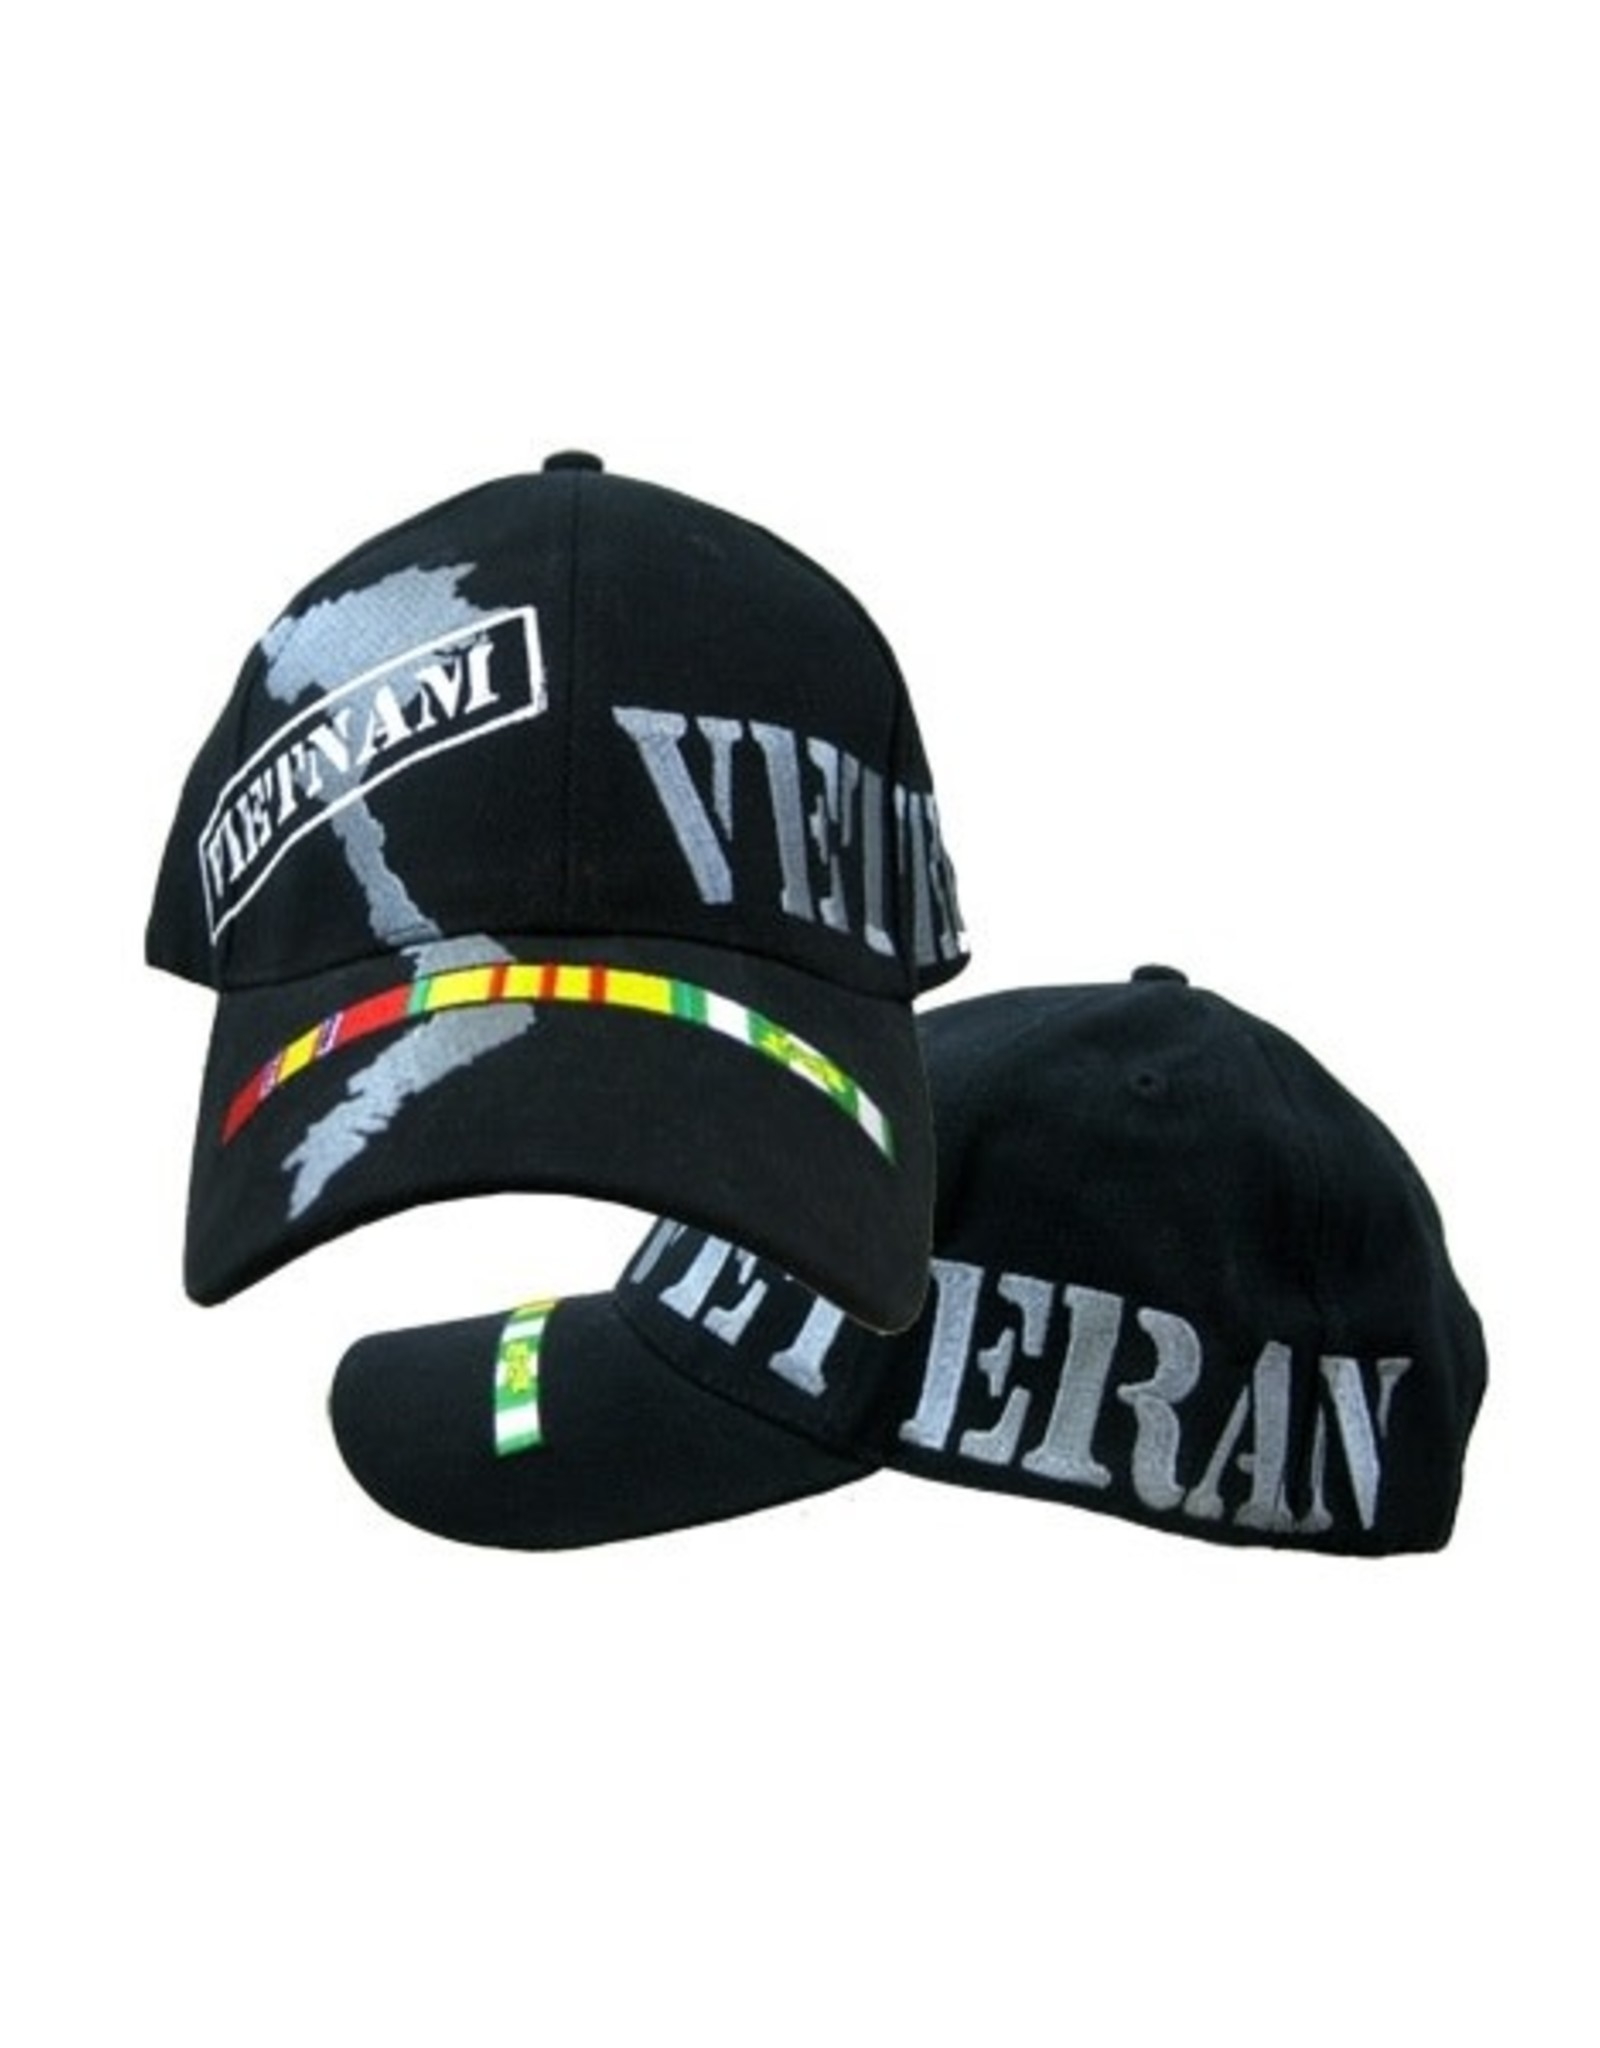 MidMil Vietnam Veteran Hat with Country Map and Ribbons Black